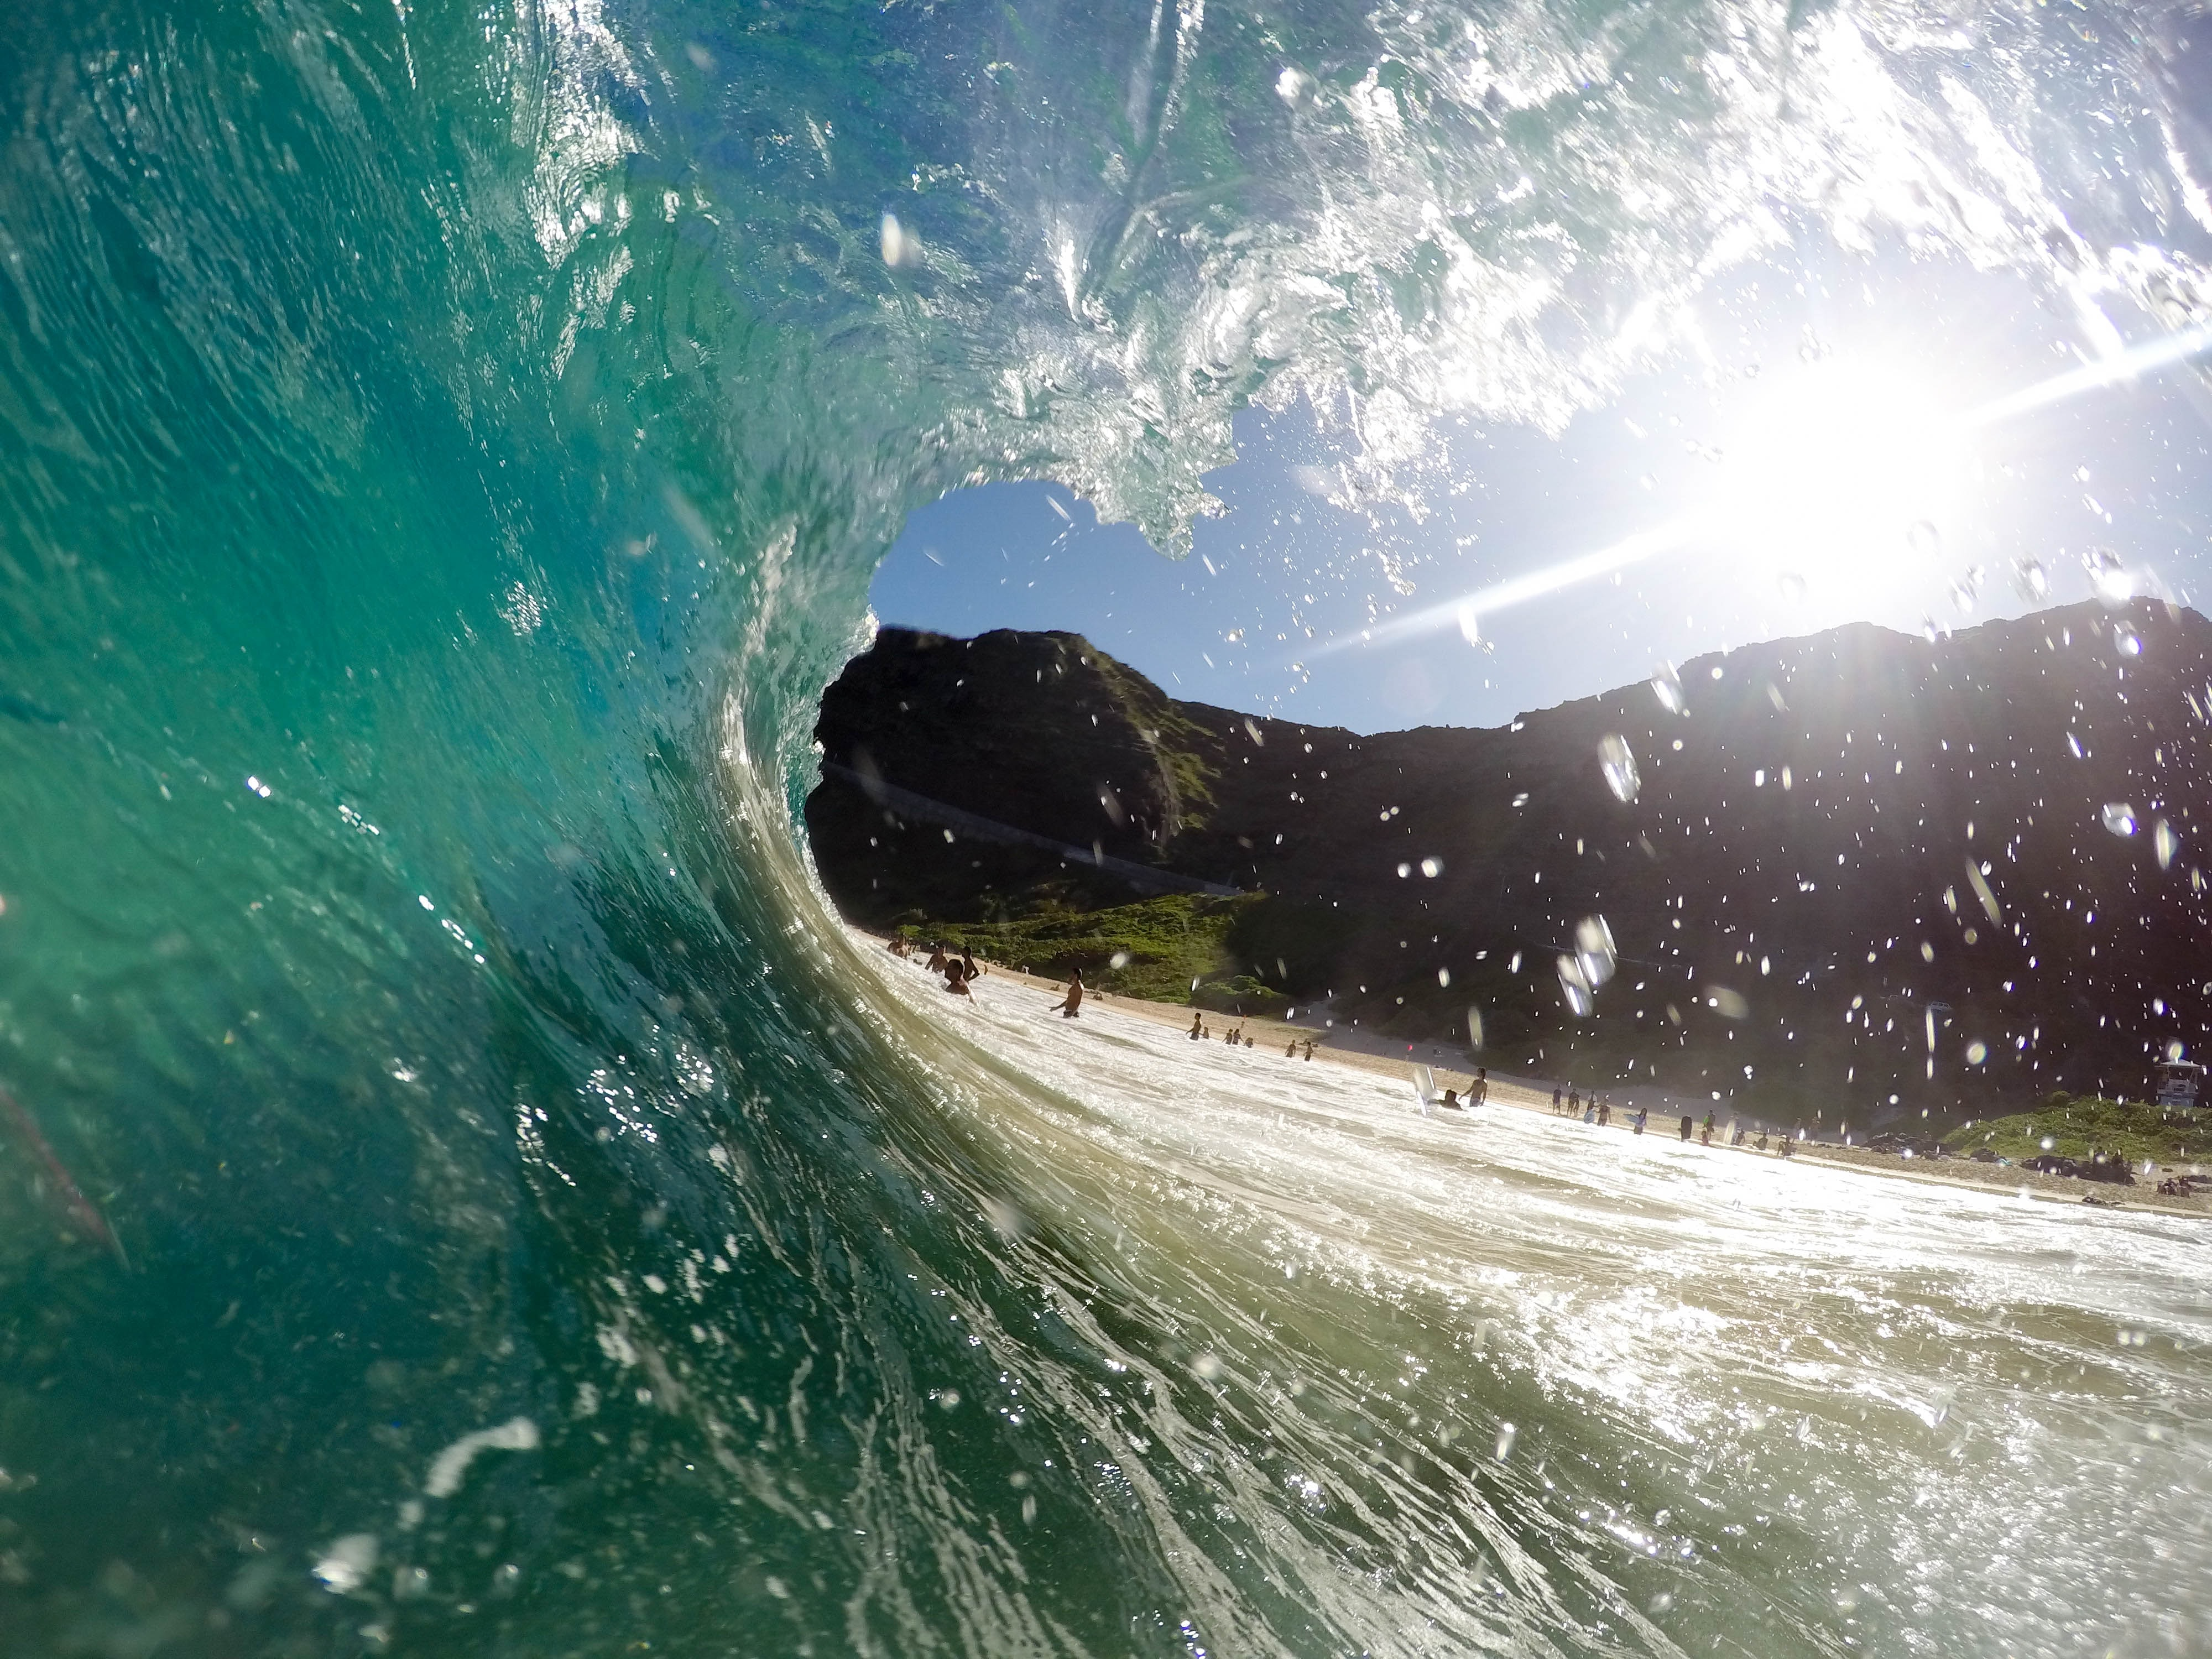 Surfer's point of view riding a wave in O'ahu